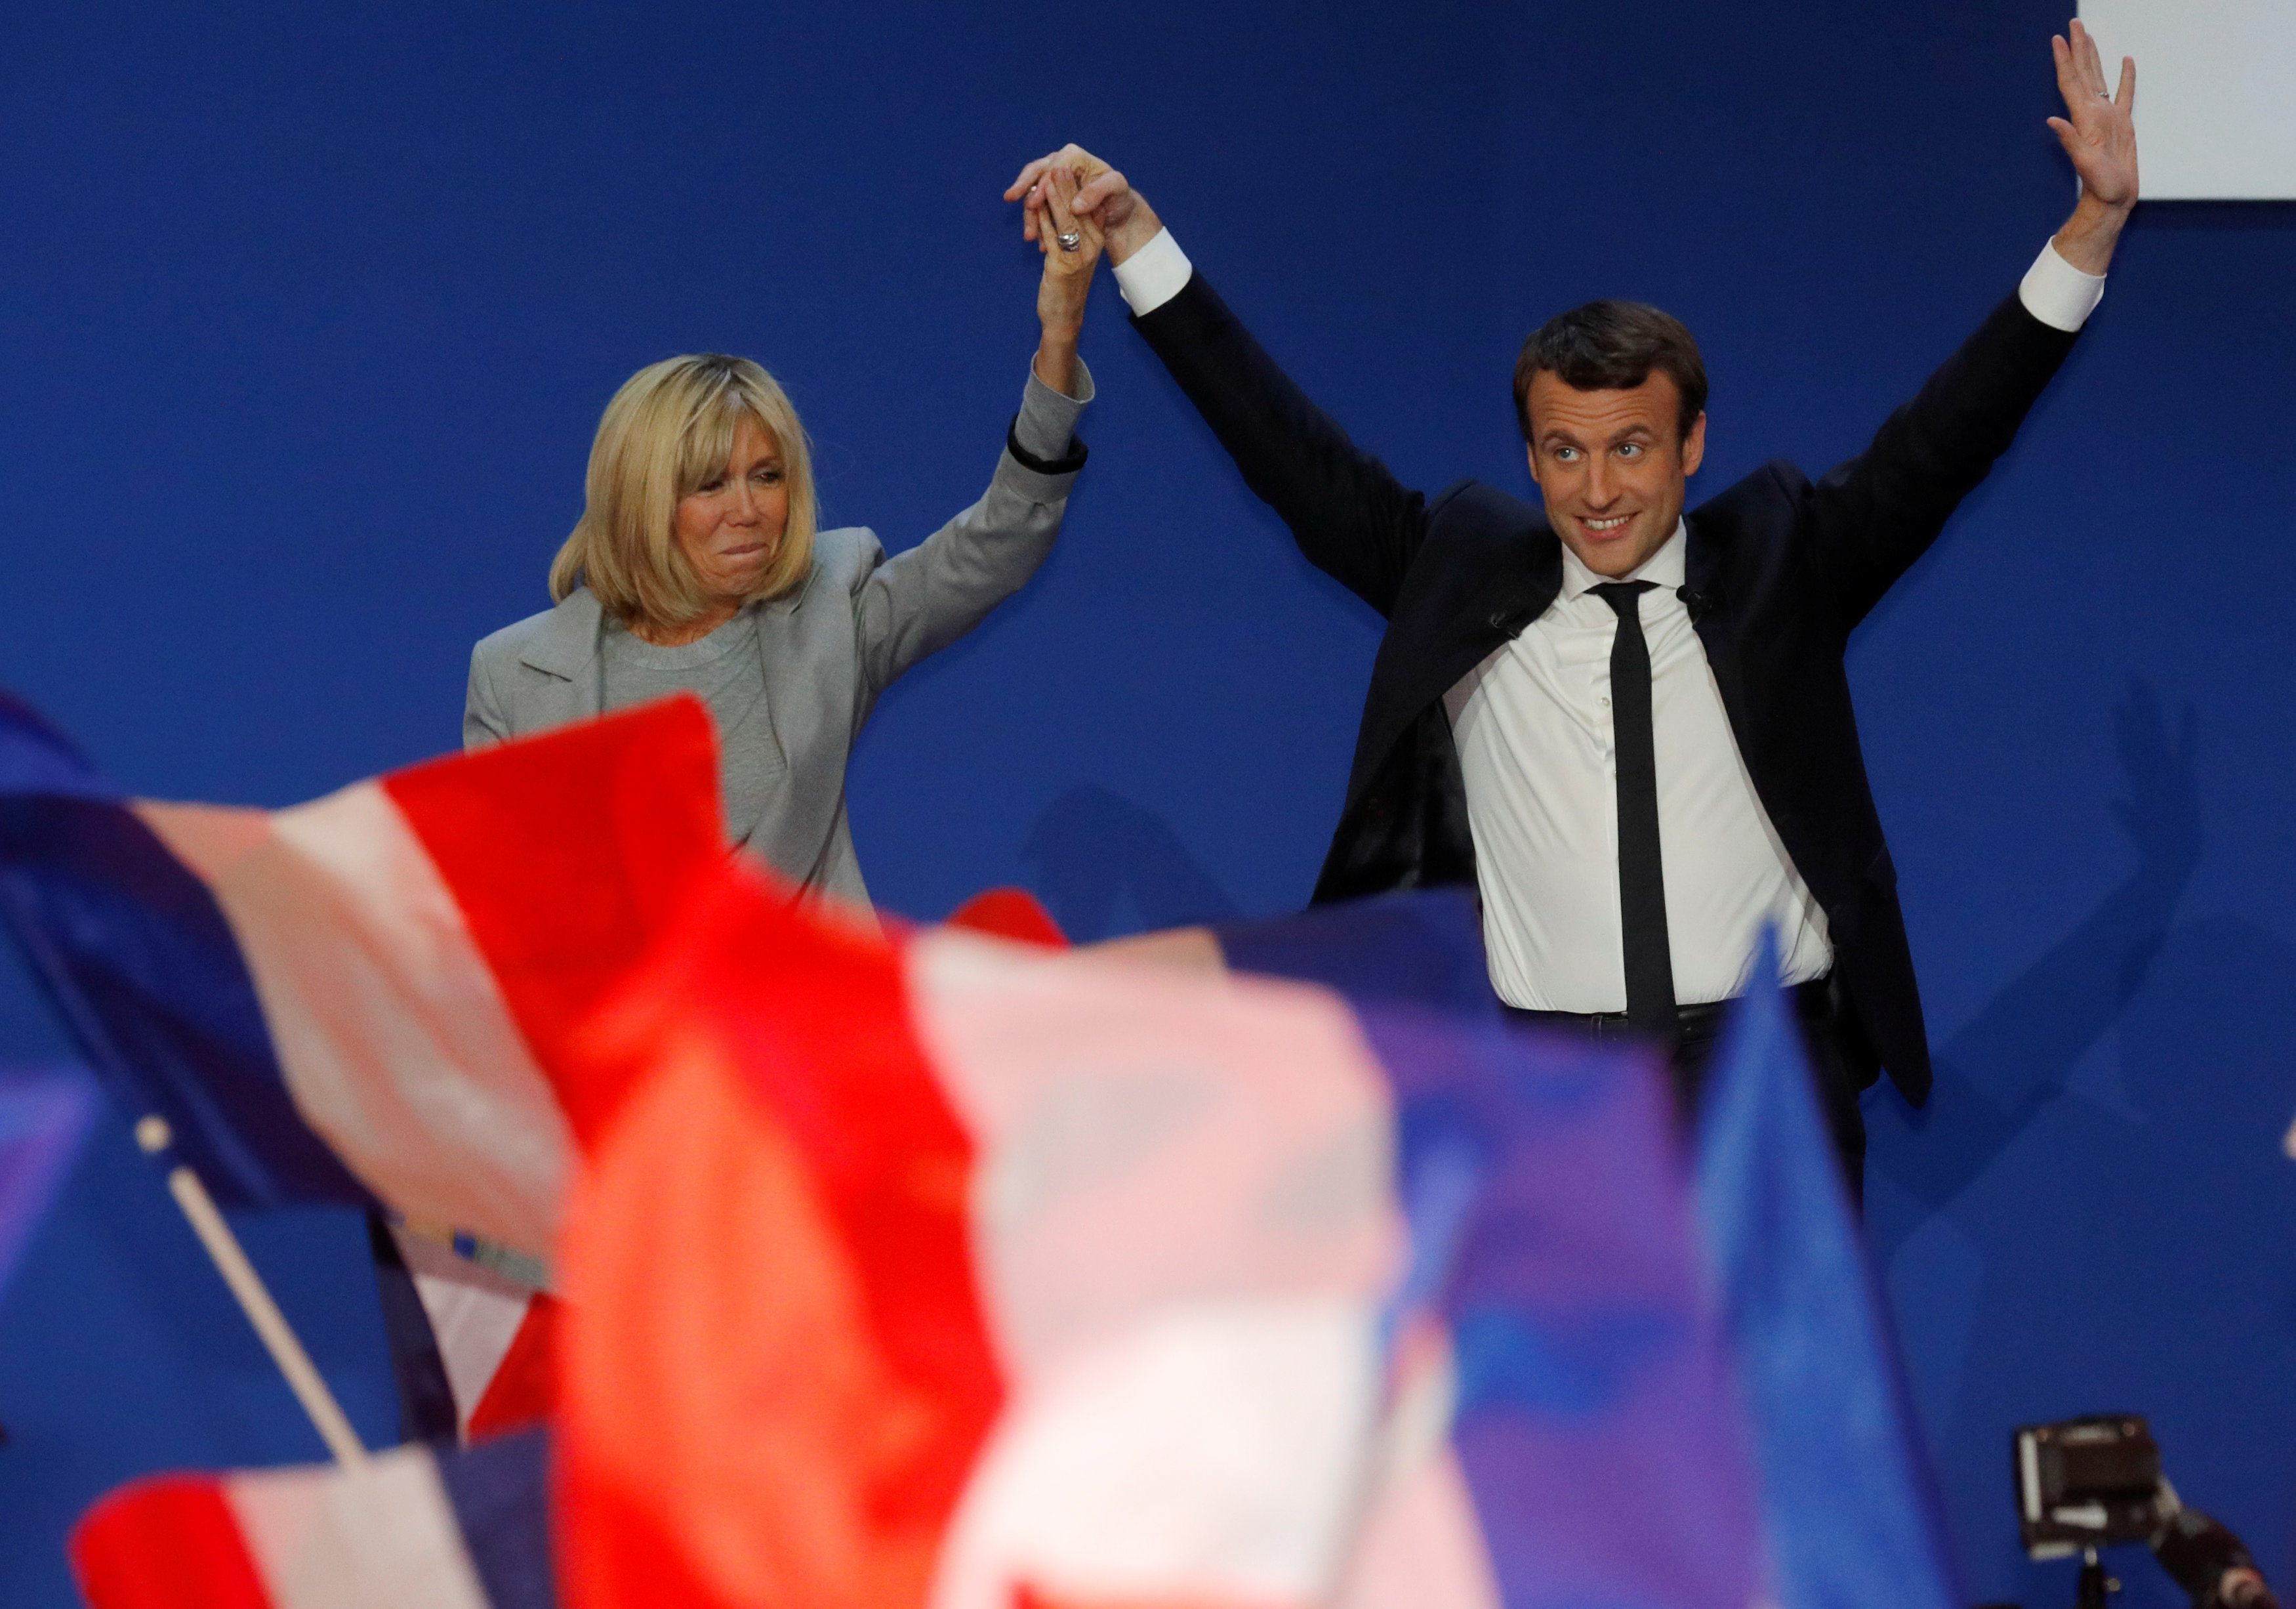 Emmanuel Macron, head of the political movement En Marche !, or Onwards !, and candidate for the 2017 French presidential election, arrives on stage with his wife Brigitte Trogneux to deliver a speech at the Parc des Expositions hall in Paris after early results in the first round of 2017 French presidential election, France, April 23, 2017. REUTERS/Philippe Wojazer